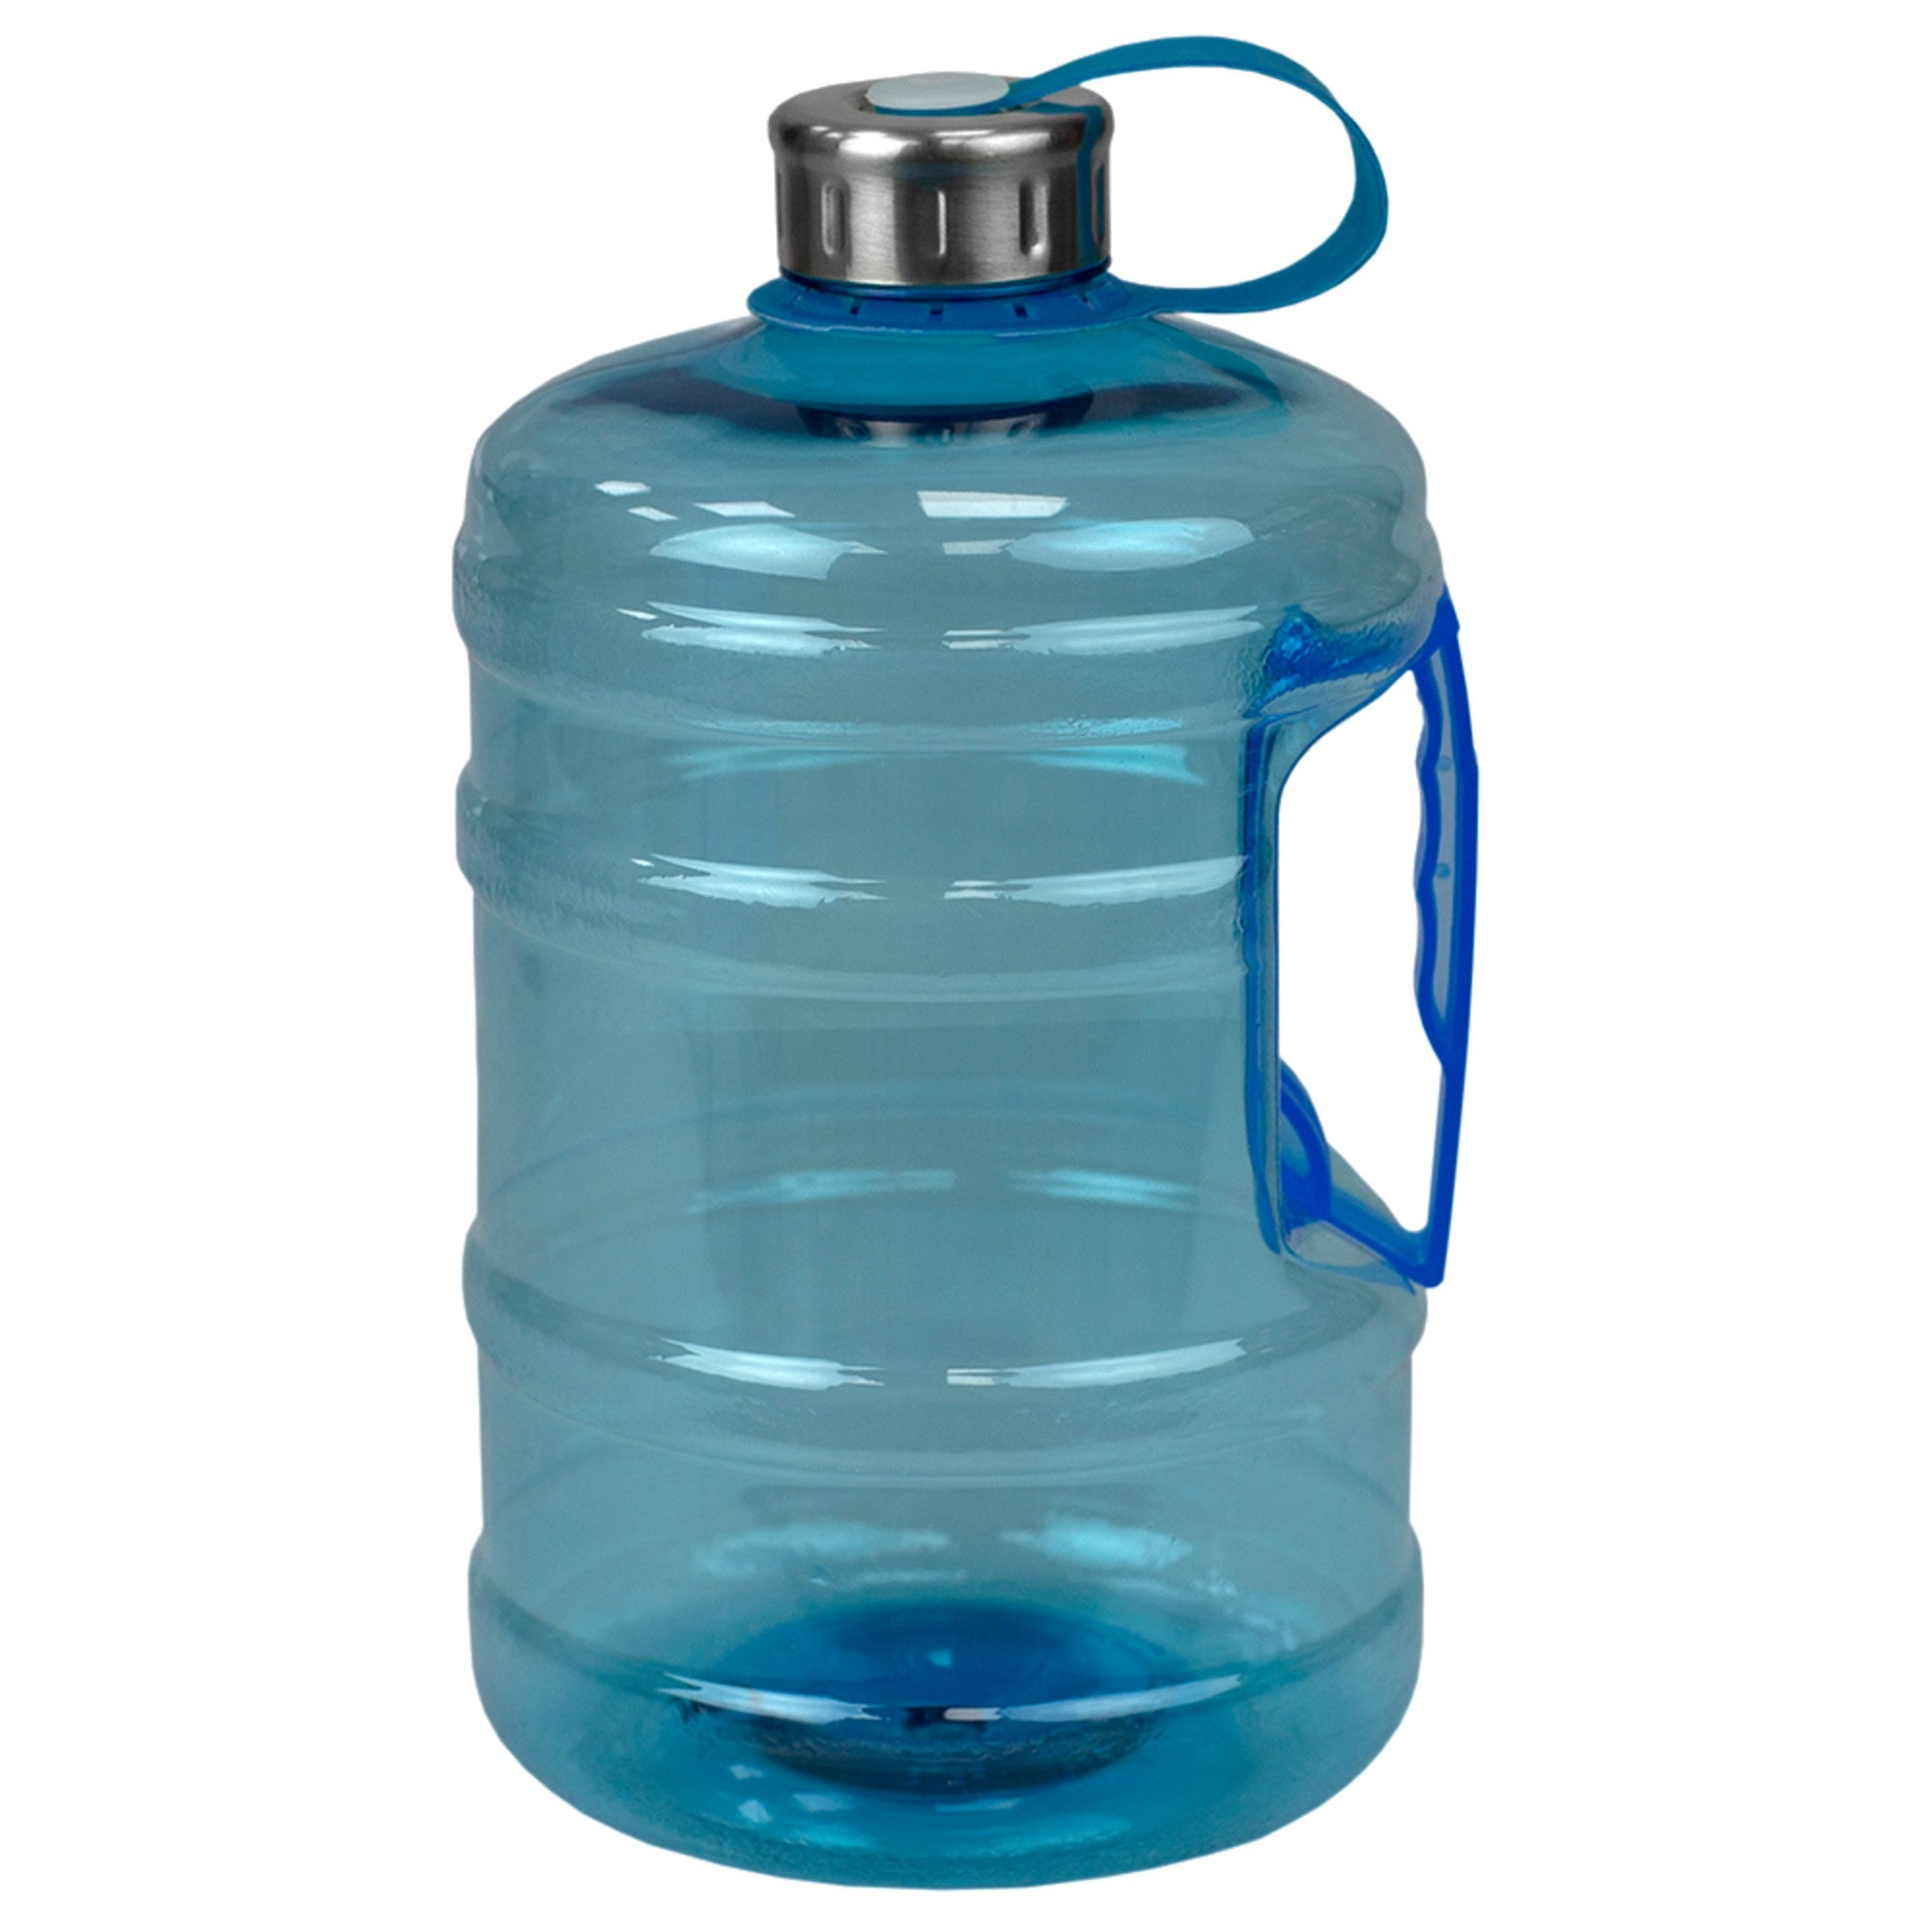 Home Basics Olympus High Capacity 67 oz. Plastic Sports Jug Travel Bottle with Tethered Stainless Twist-on Cap and Wide Grip Handle, Blue - Blue